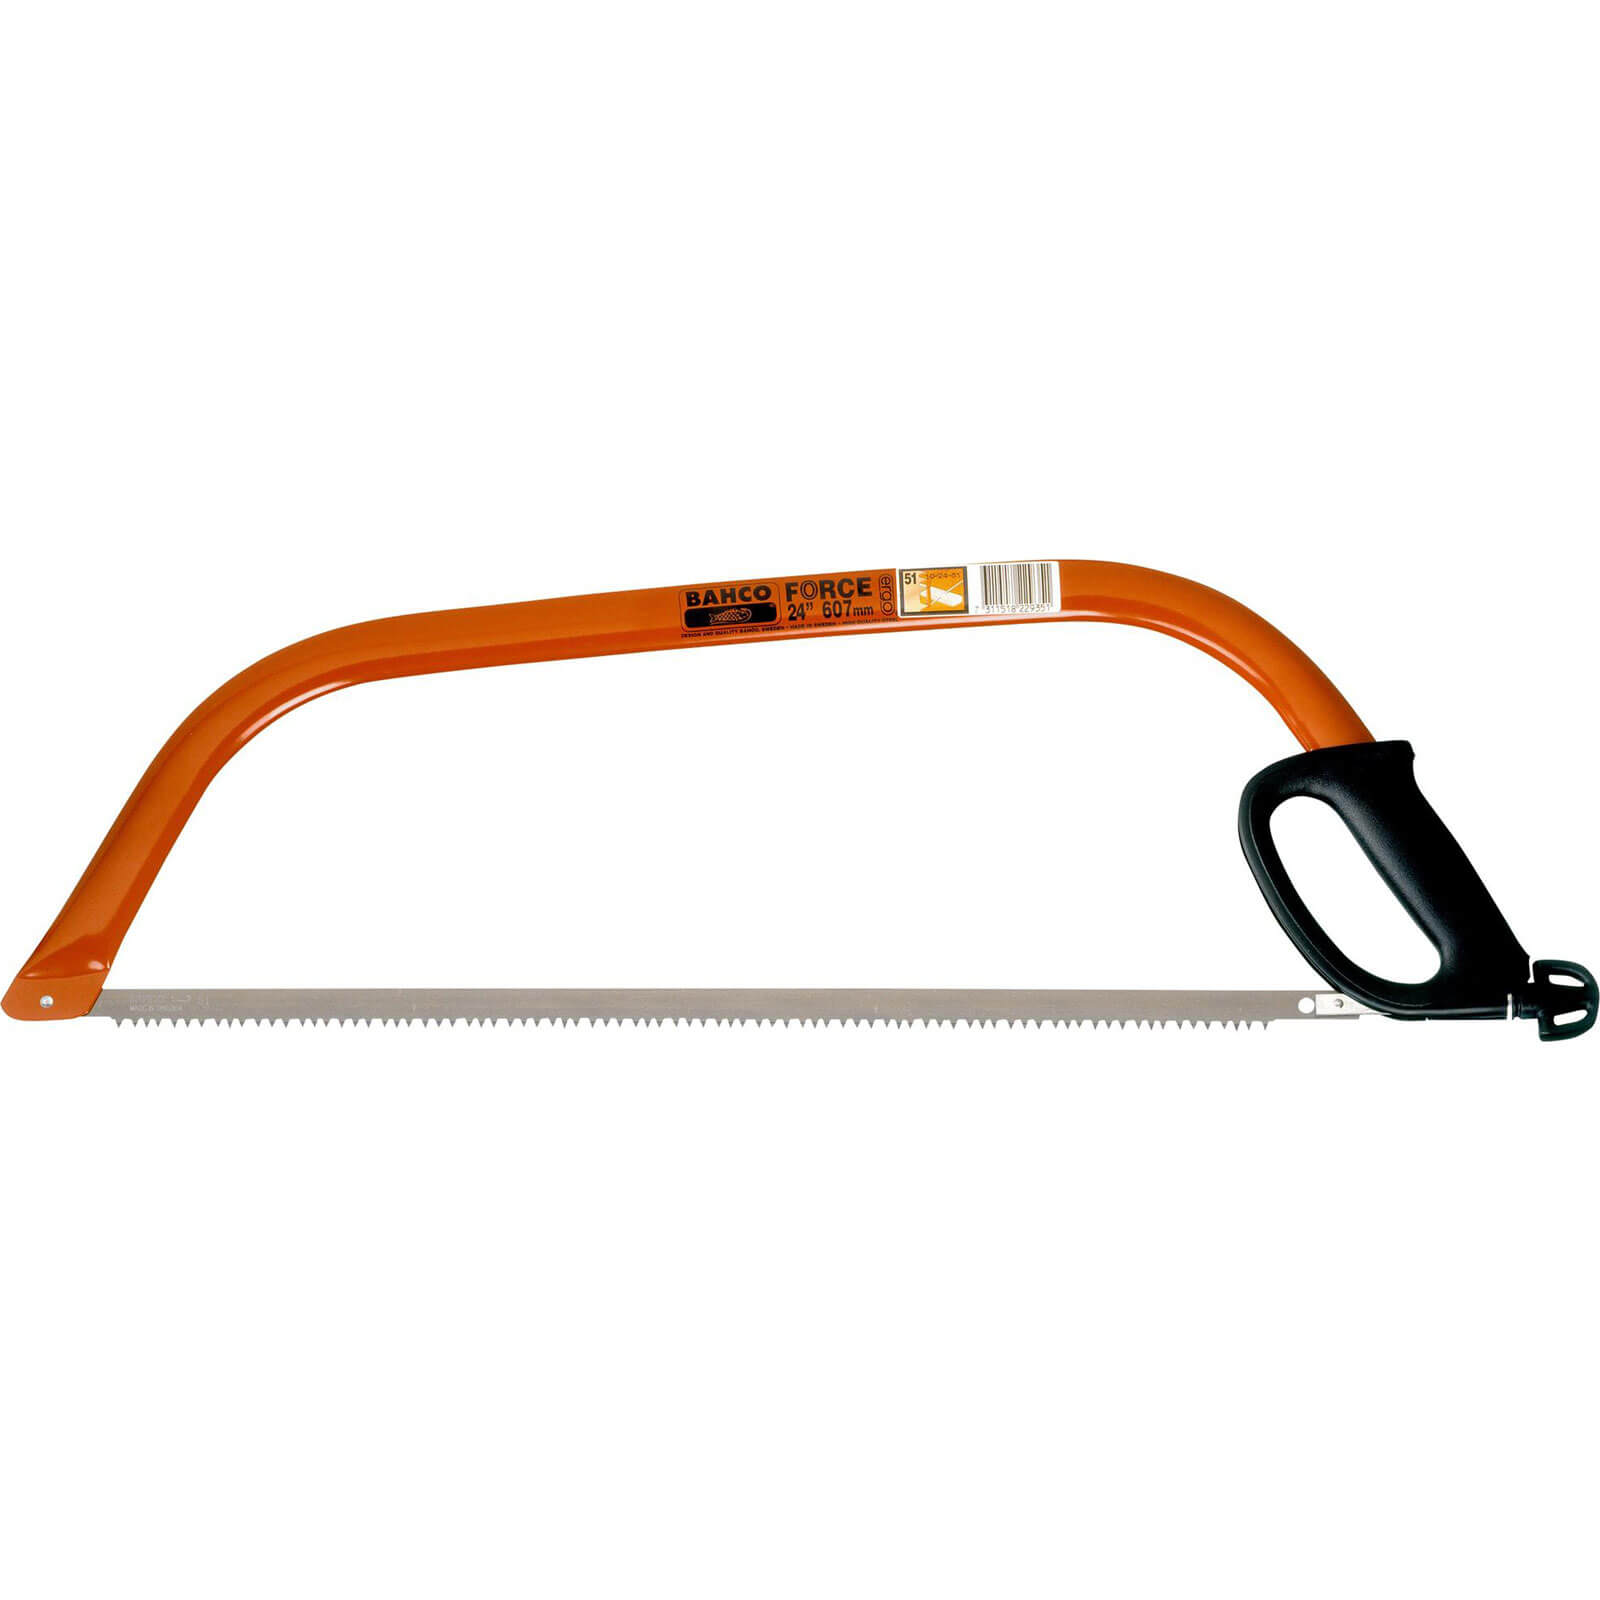 Bahco Heavy Duty Bow Saw 24&quot / 604mm 51 Tooth All Purpose